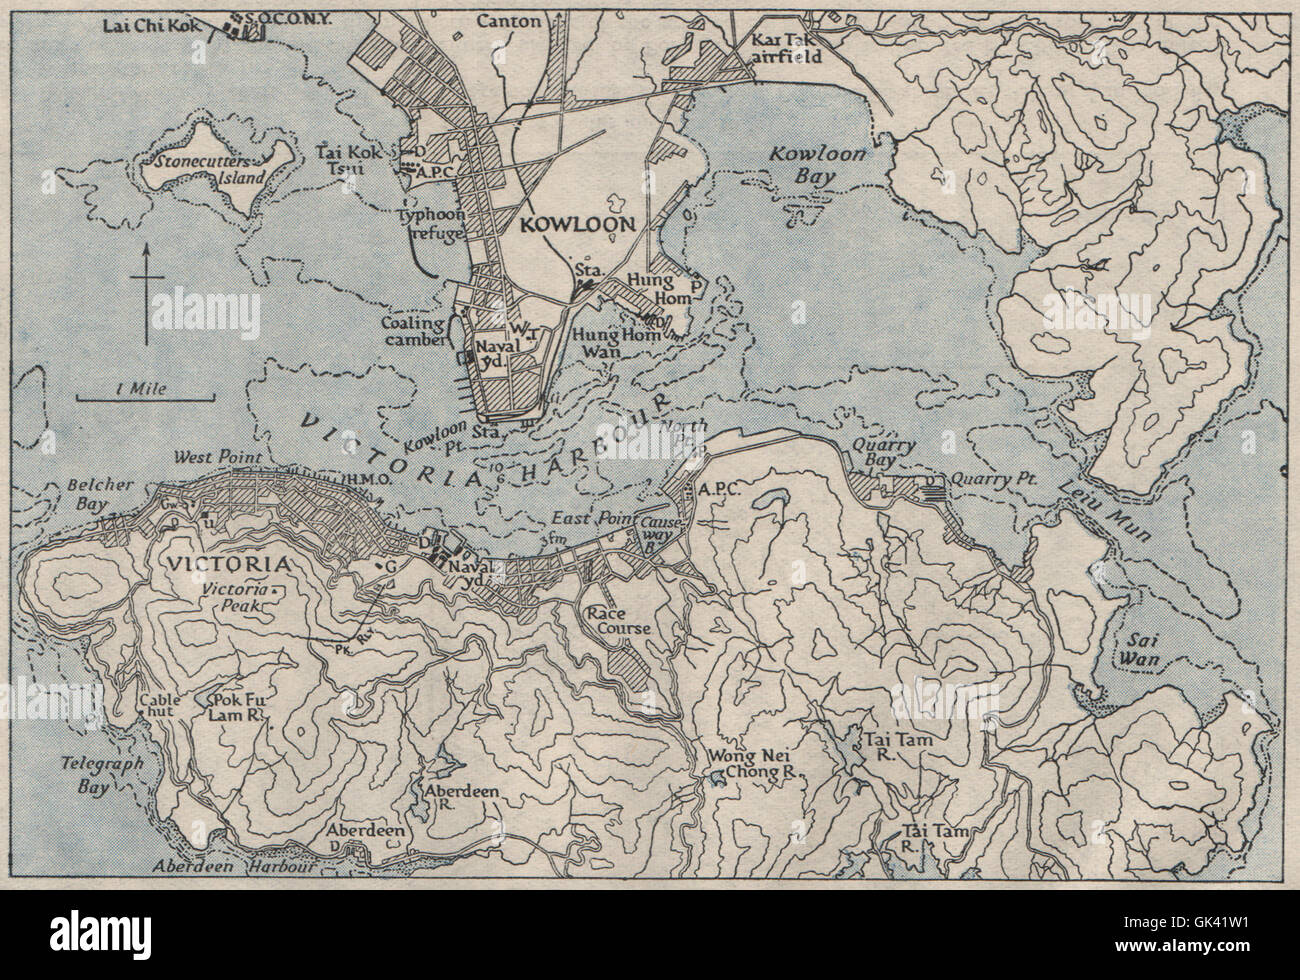 20th century world map stock photos 20th century world map stock victoria harbour hong kong china ww2 royal navy intelligence map 1945 gumiabroncs Image collections